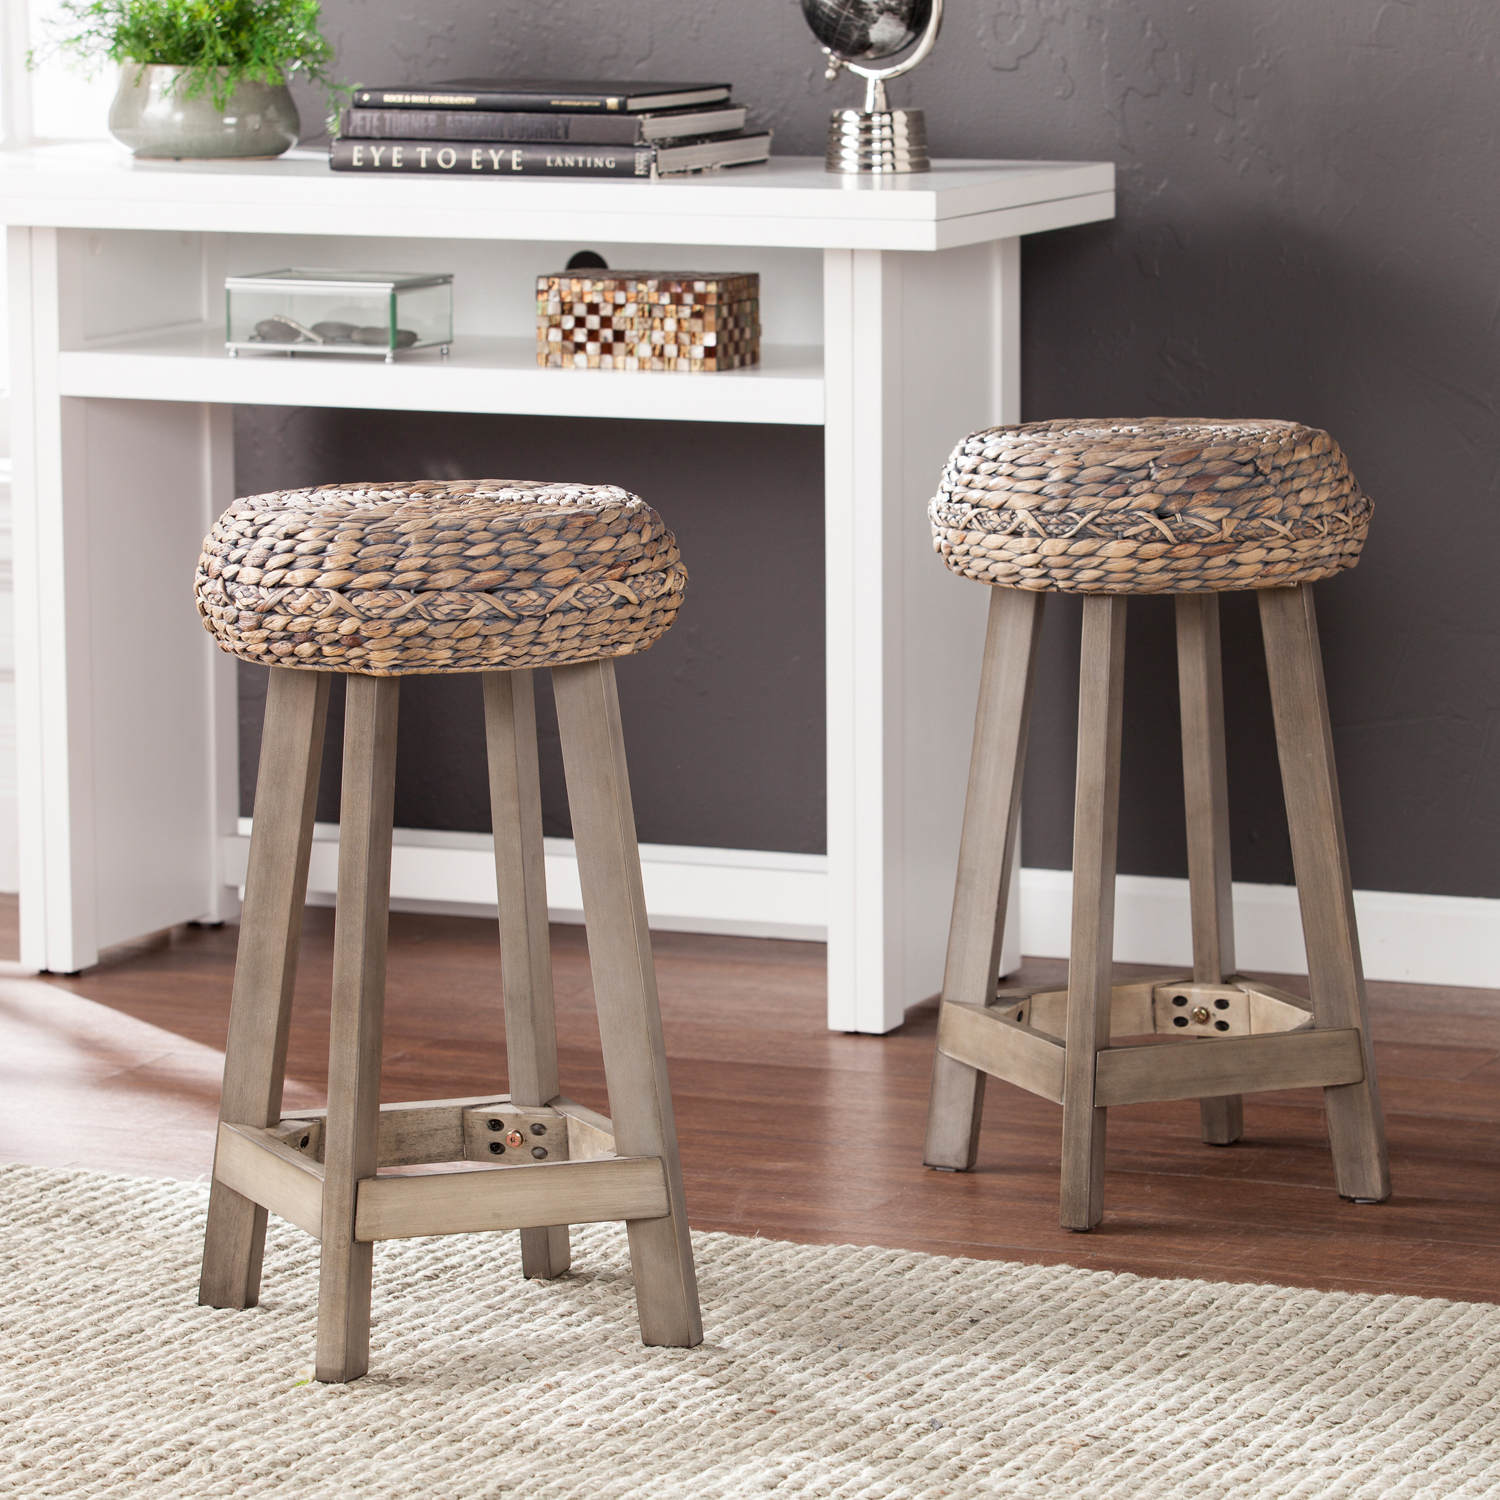 Incredible Details About Backless Round Stool Chair Water Hyacinth Kitchen Decor Weathered Gray 24 2Pc Ncnpc Chair Design For Home Ncnpcorg